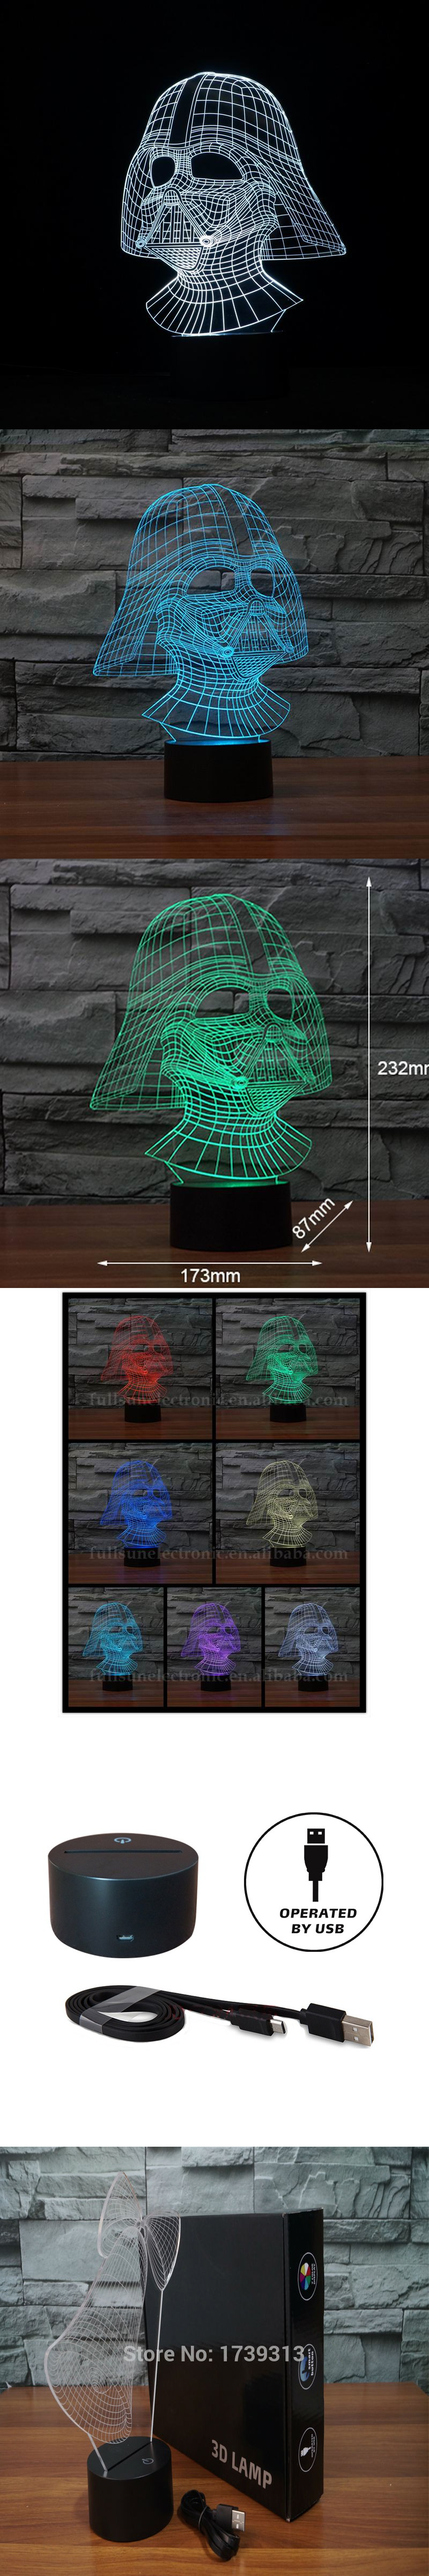 Cool and Handsome Star Wars Darth Vader Shape 3D Illusion L night light as Home Decoration. $22.5